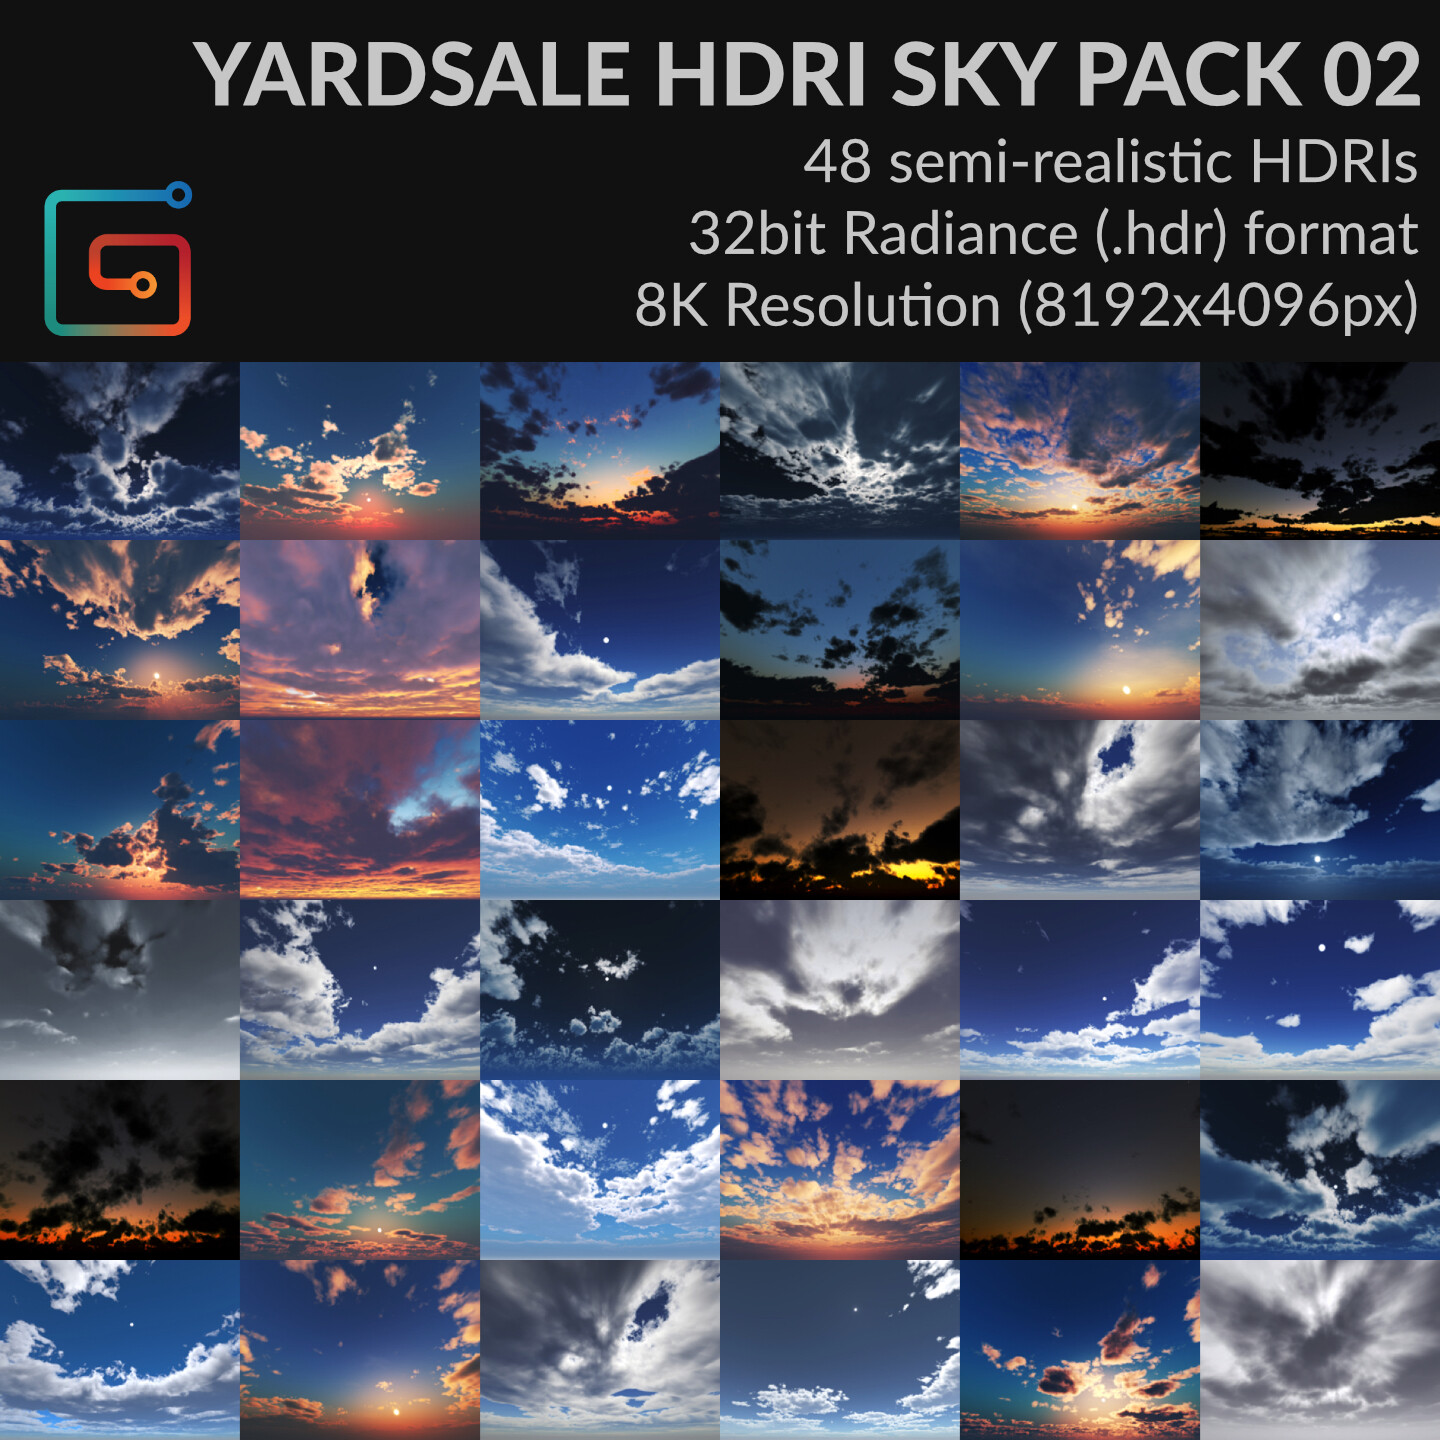 YARDSALE HDRI SKY PACK 02